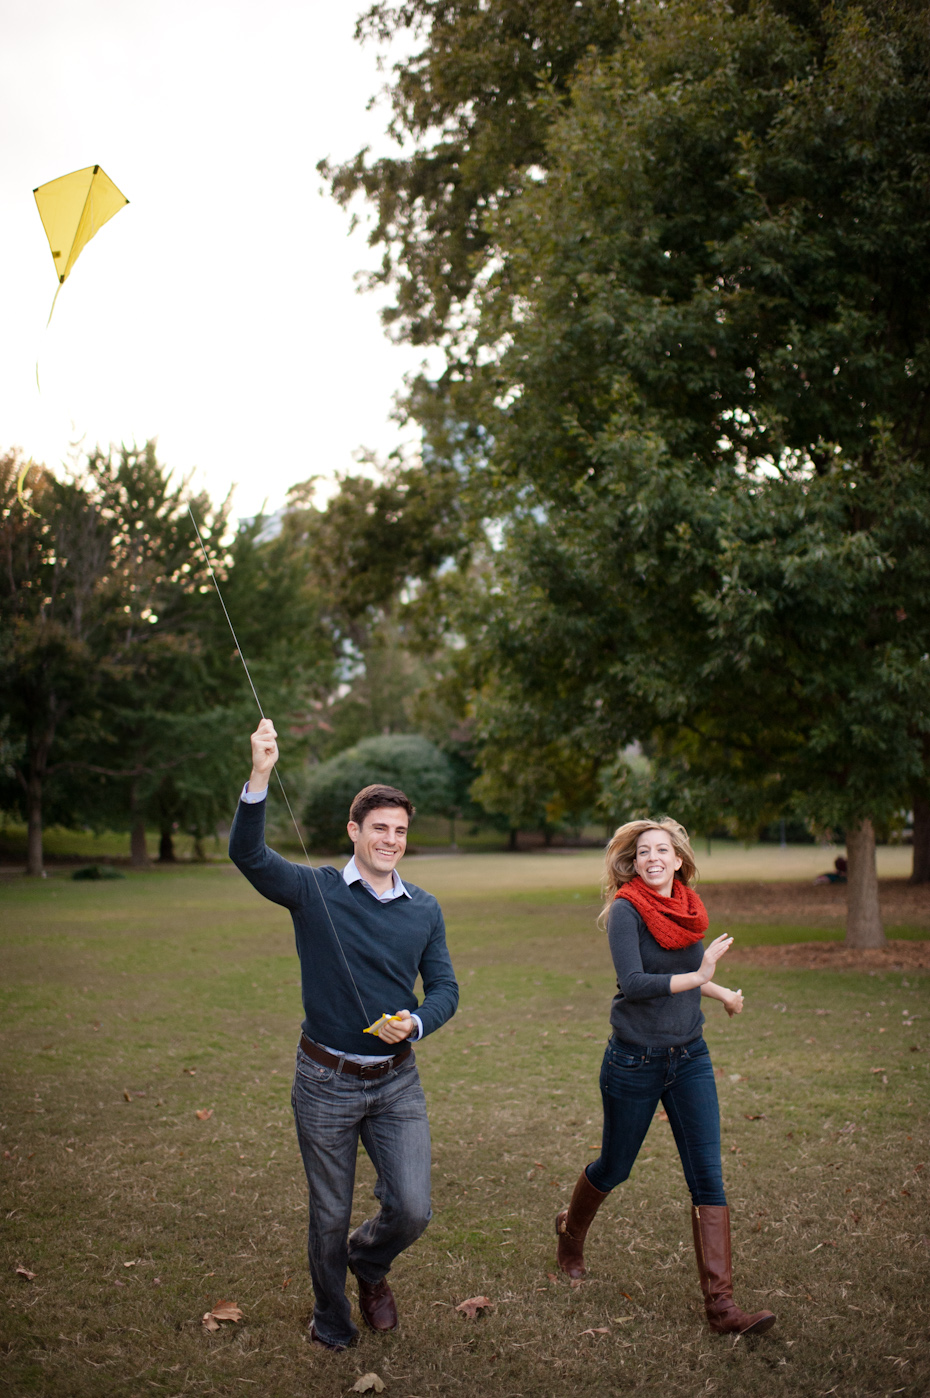 Engagement Photos with kite